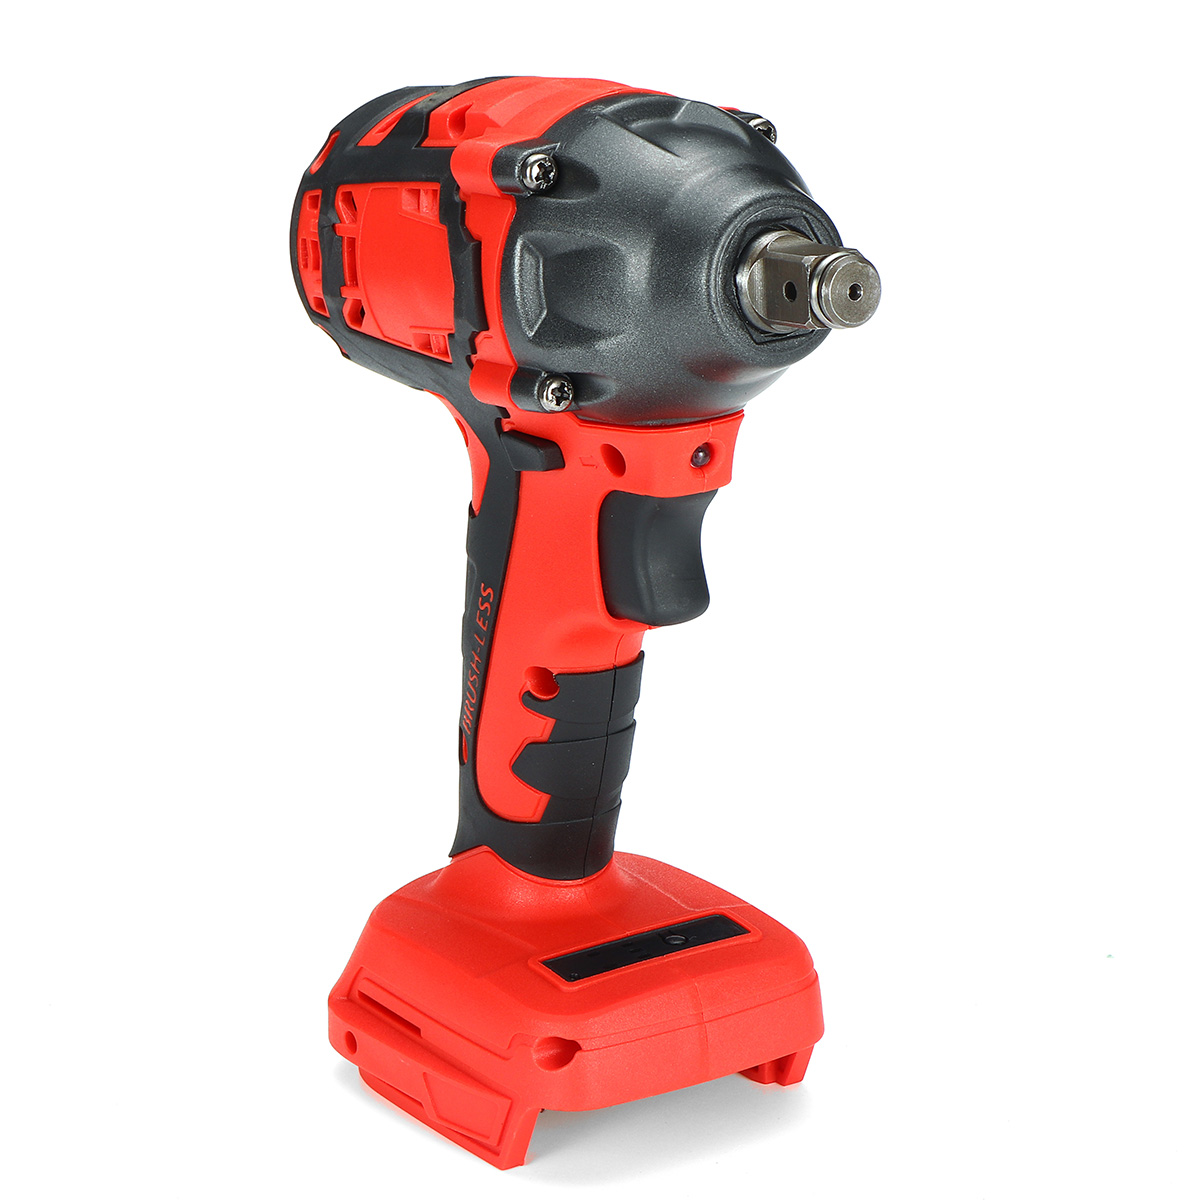 18V 520N.m. Li-Ion Cordless Impact Brushless Wrench Driver 1/2Inch Electric Wrench Replacement for Makita Battery